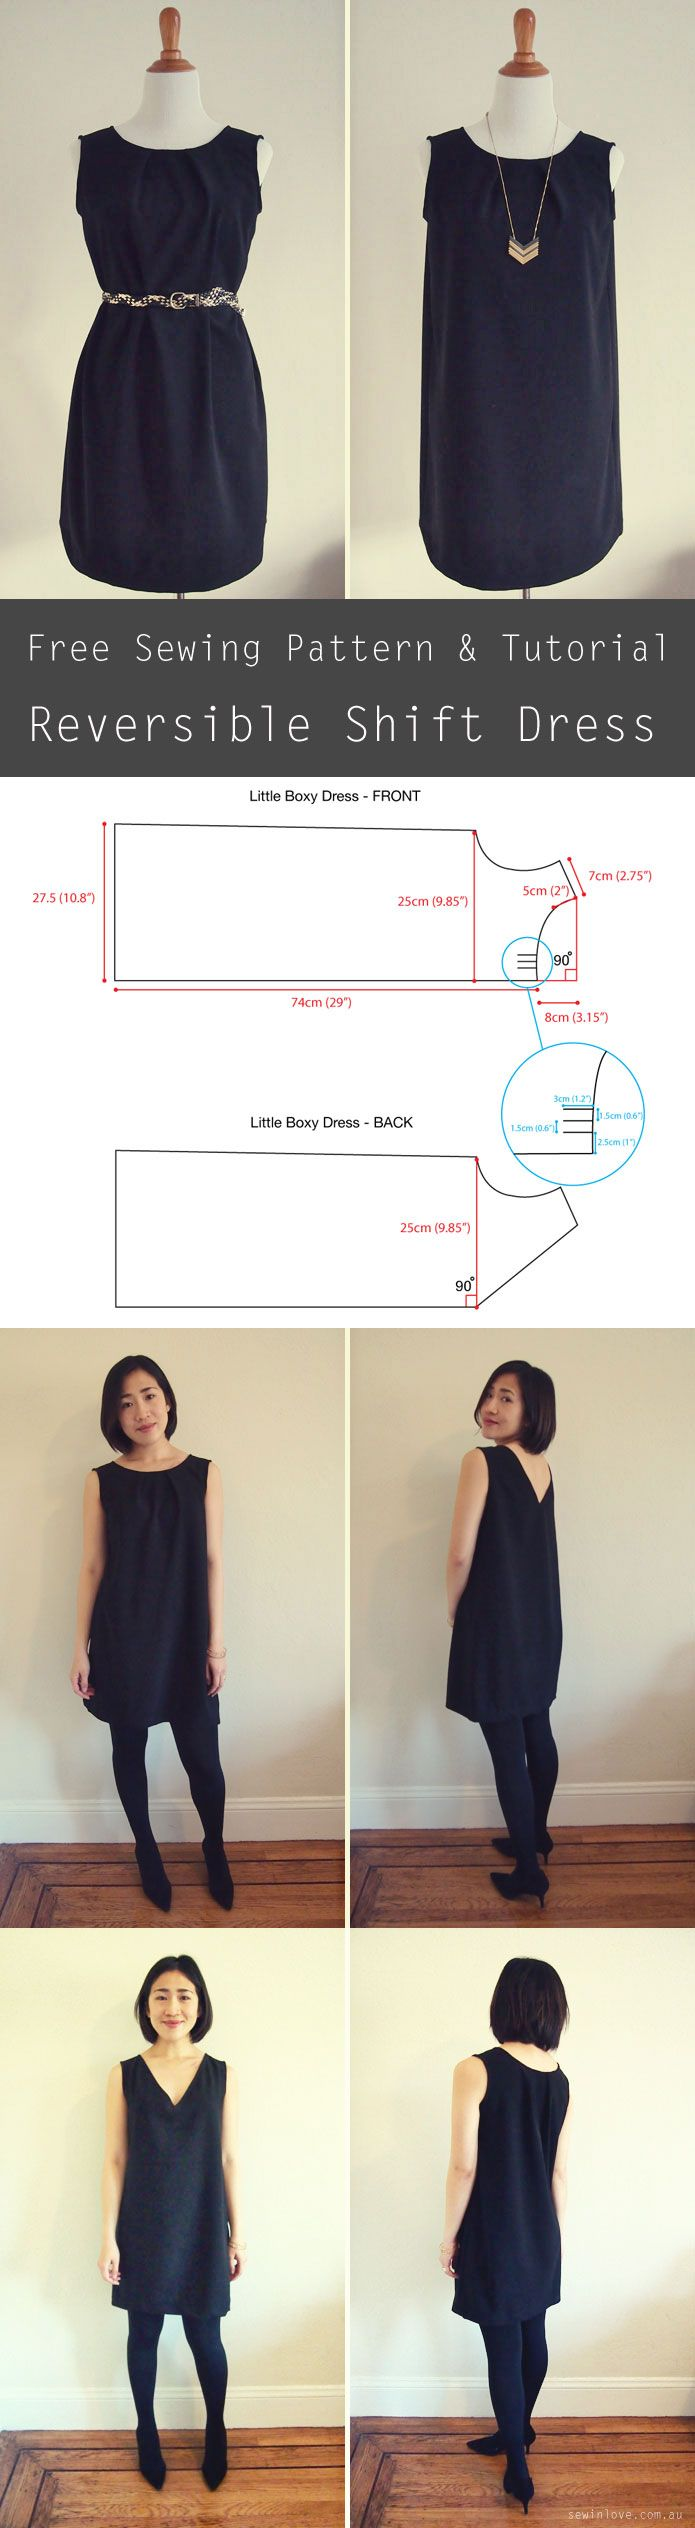 Running belt diy an easy sewing tutorial sewing patterns free sewing pattern reversible shift dress the dress can be worn 2 ways jeuxipadfo Image collections